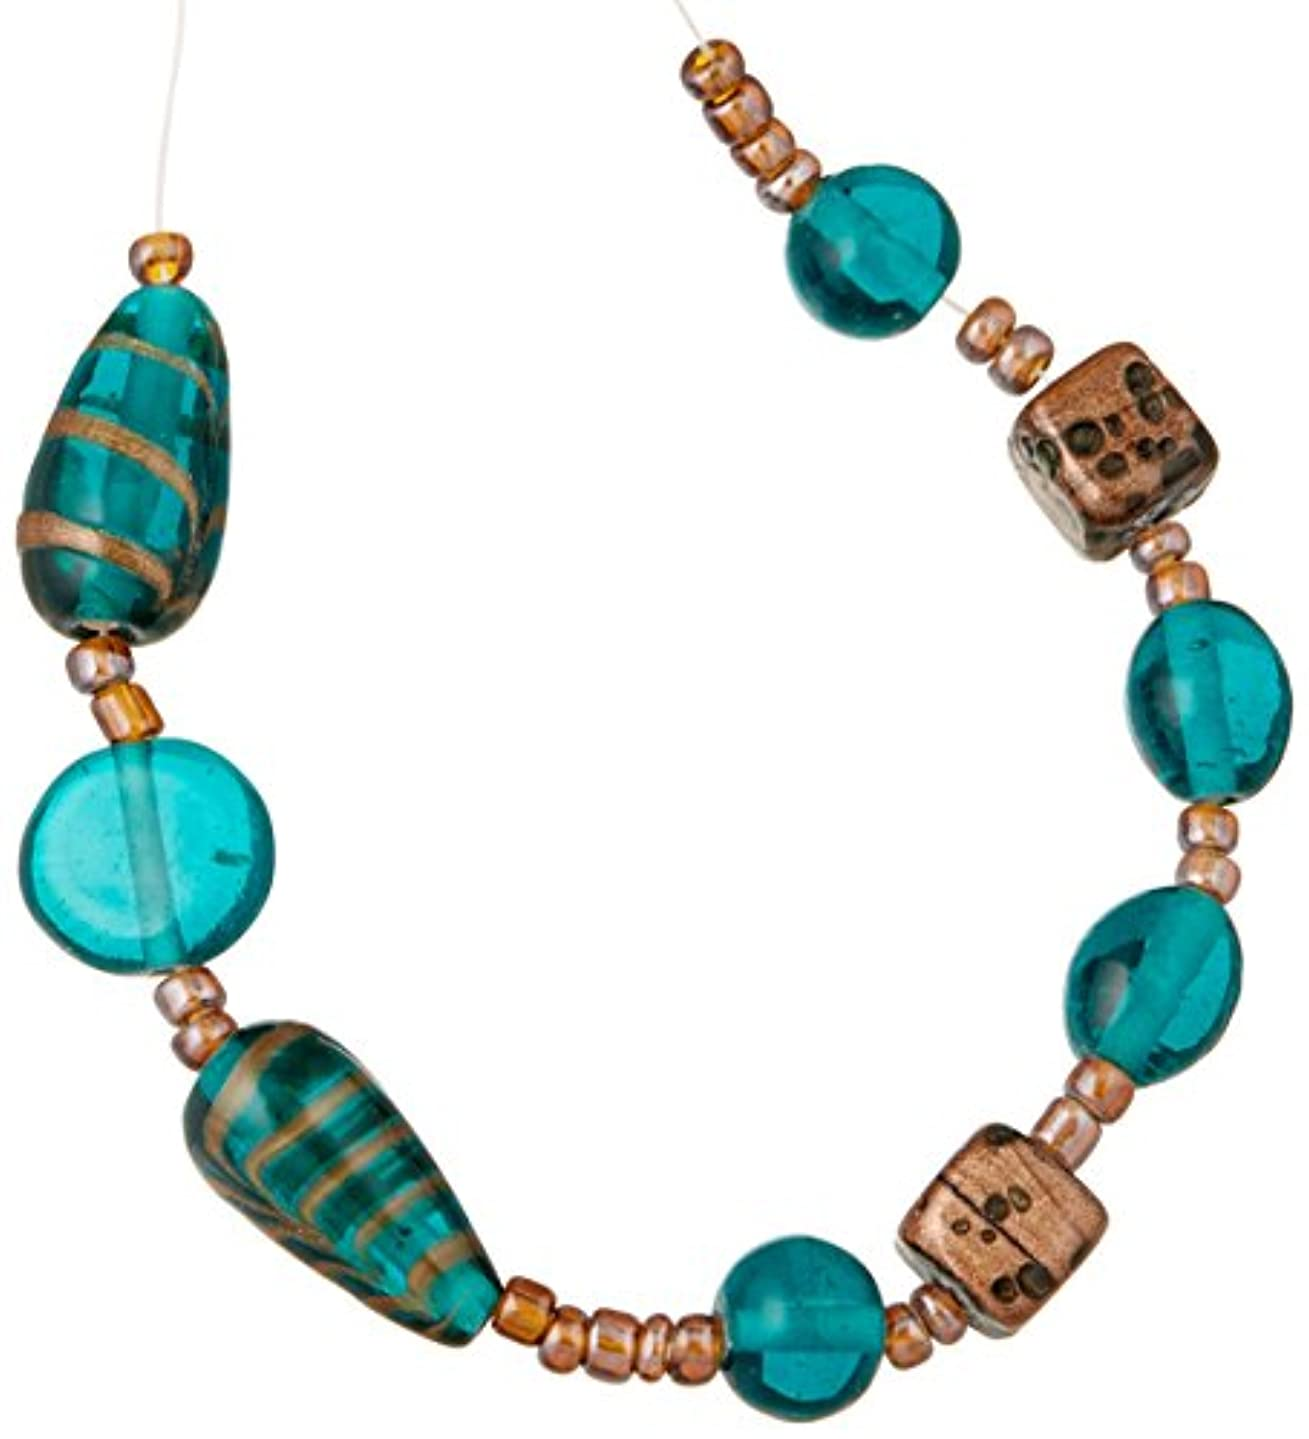 Cousin Jewelry Basics Glass Bead Mix, Teal and Gold Swirl, 9-Pack